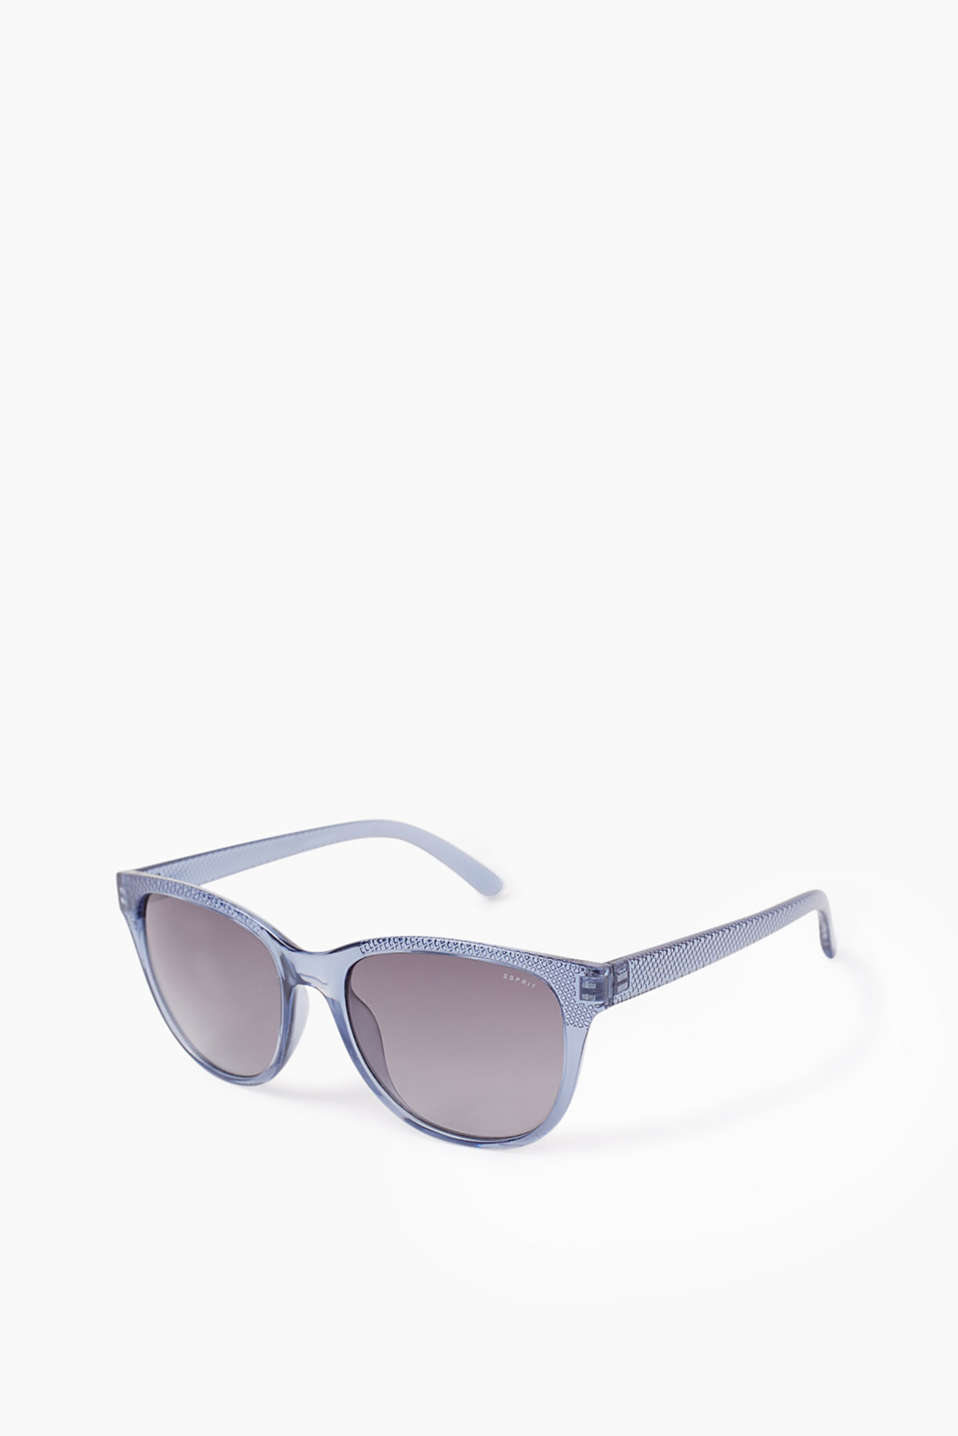 Esprit - Trendy sunglasses with a 3D texture